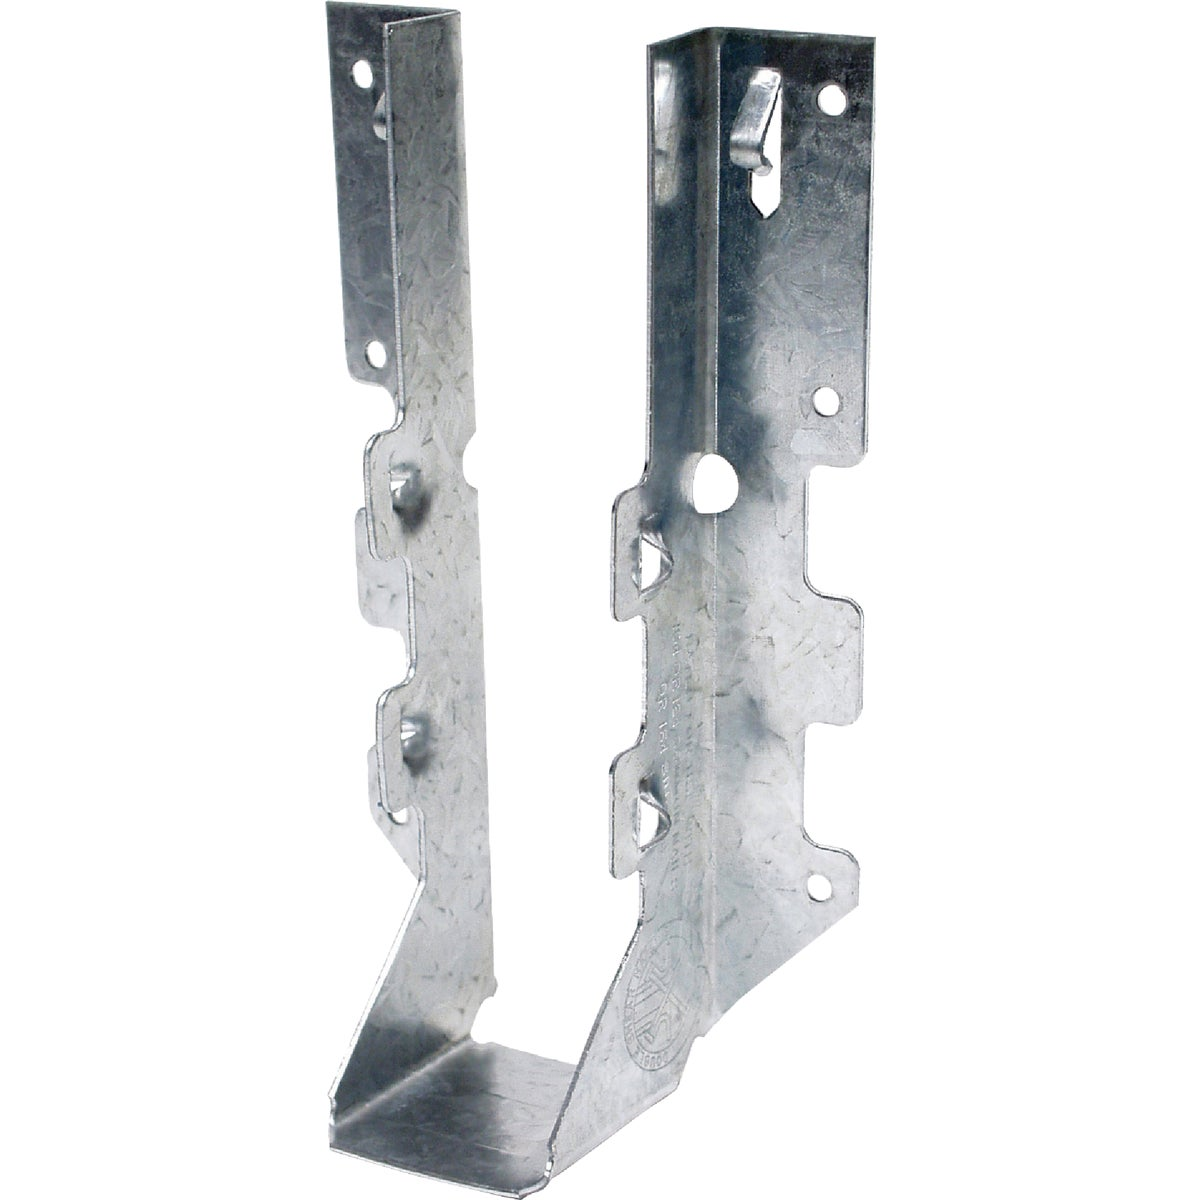 2X8 JOIST HANGER ZMX - LUS28Z by Simpson Strong Tie